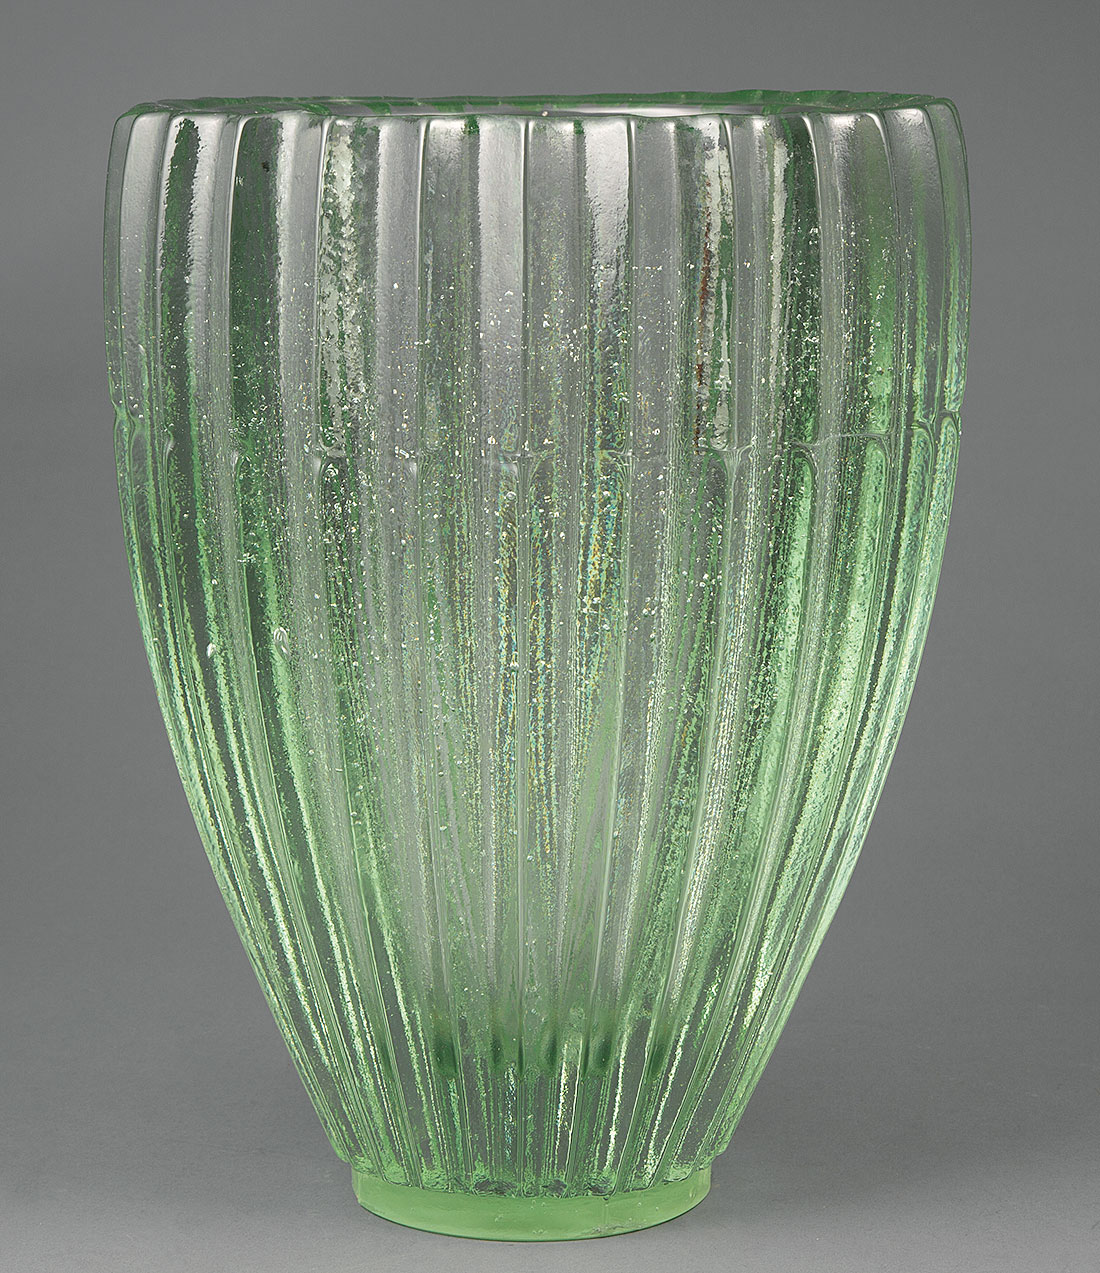 Lot 991 - Large Studio Molded Glass Vase , ovoid body with thick fluted walls, h. 14 7/8 in., dia. 10 3/4 in .